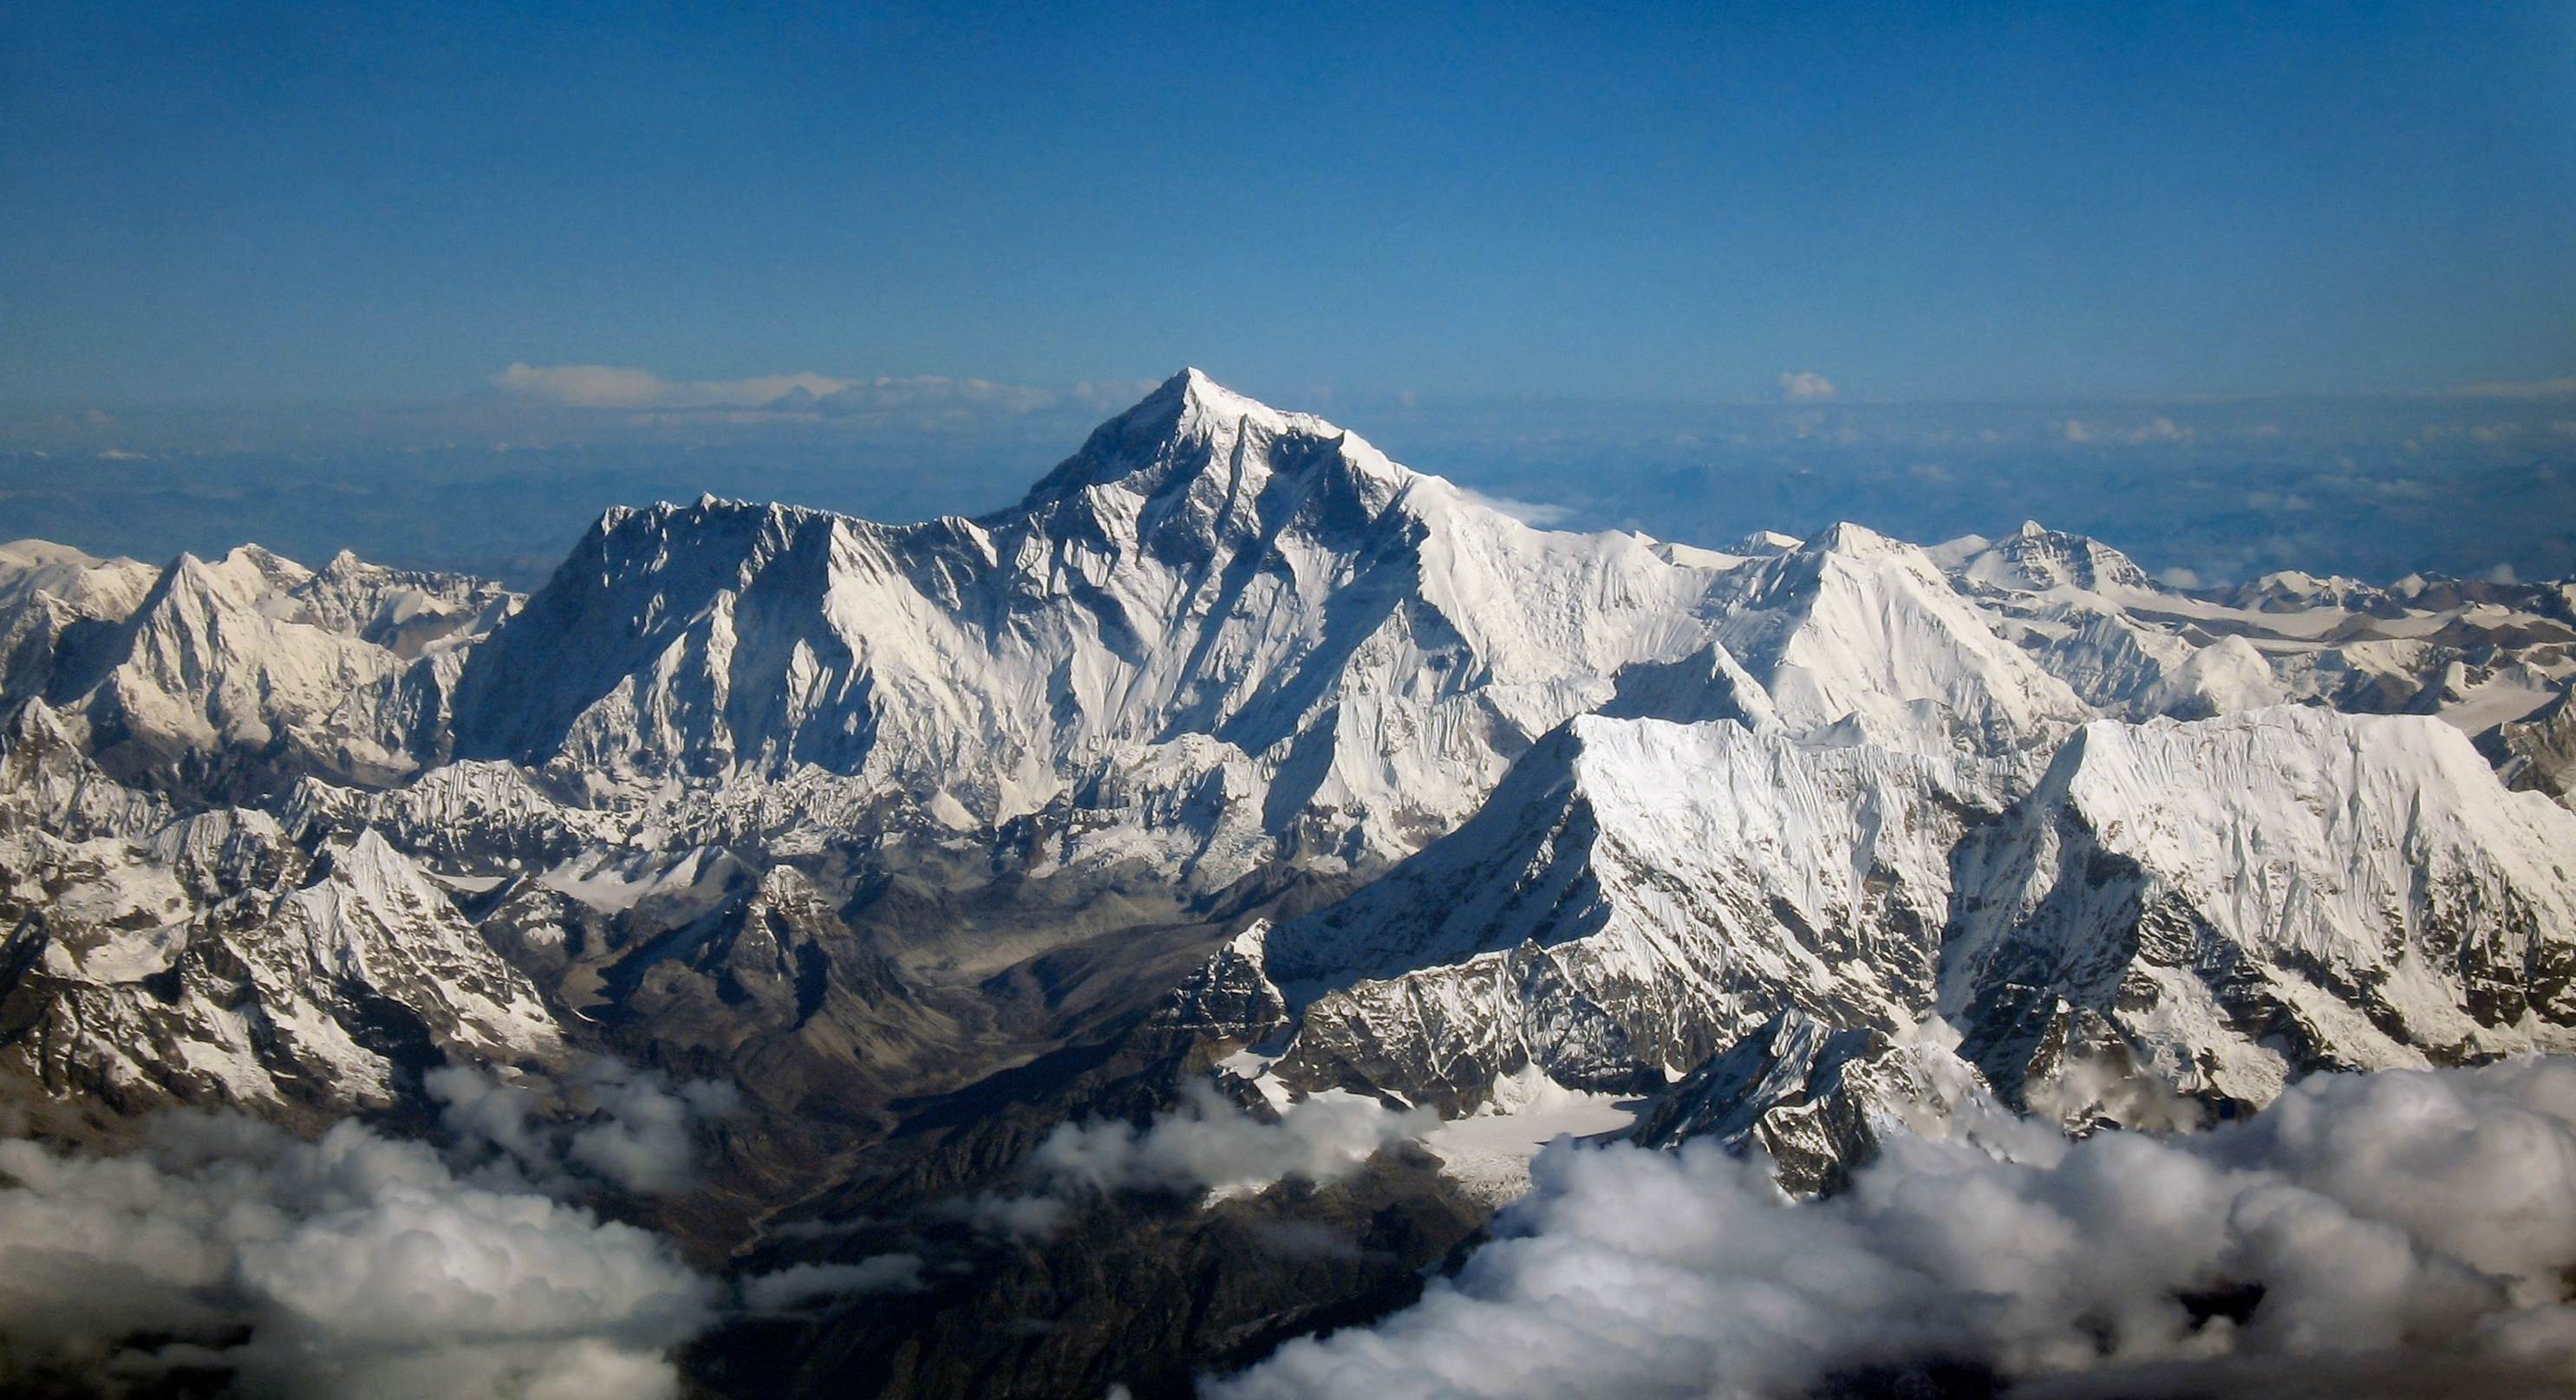 Mount_Everest_as_seen_from_Drukair2